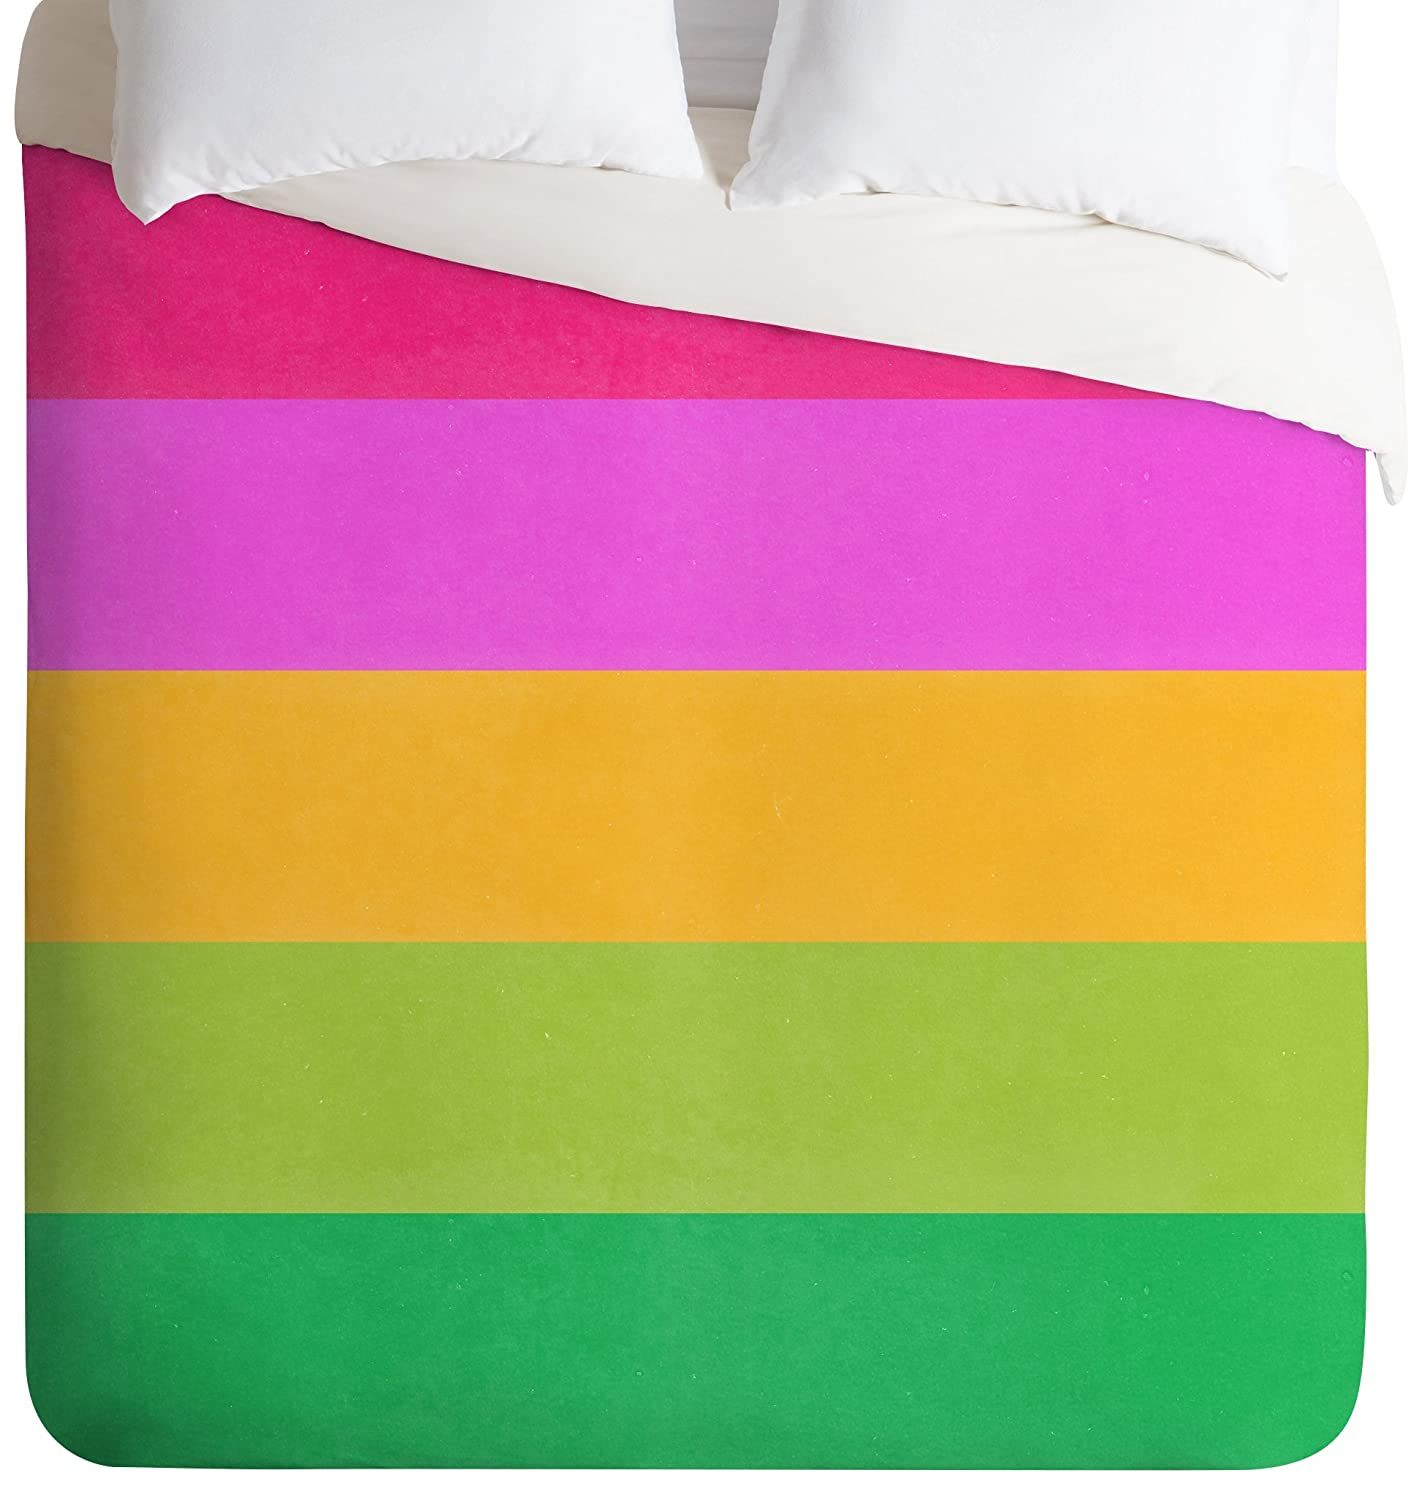 Buy Deny Designs Garima Dhawan Mindscape 7 Duvet Cover Queen Online At Low Prices In India Amazon In